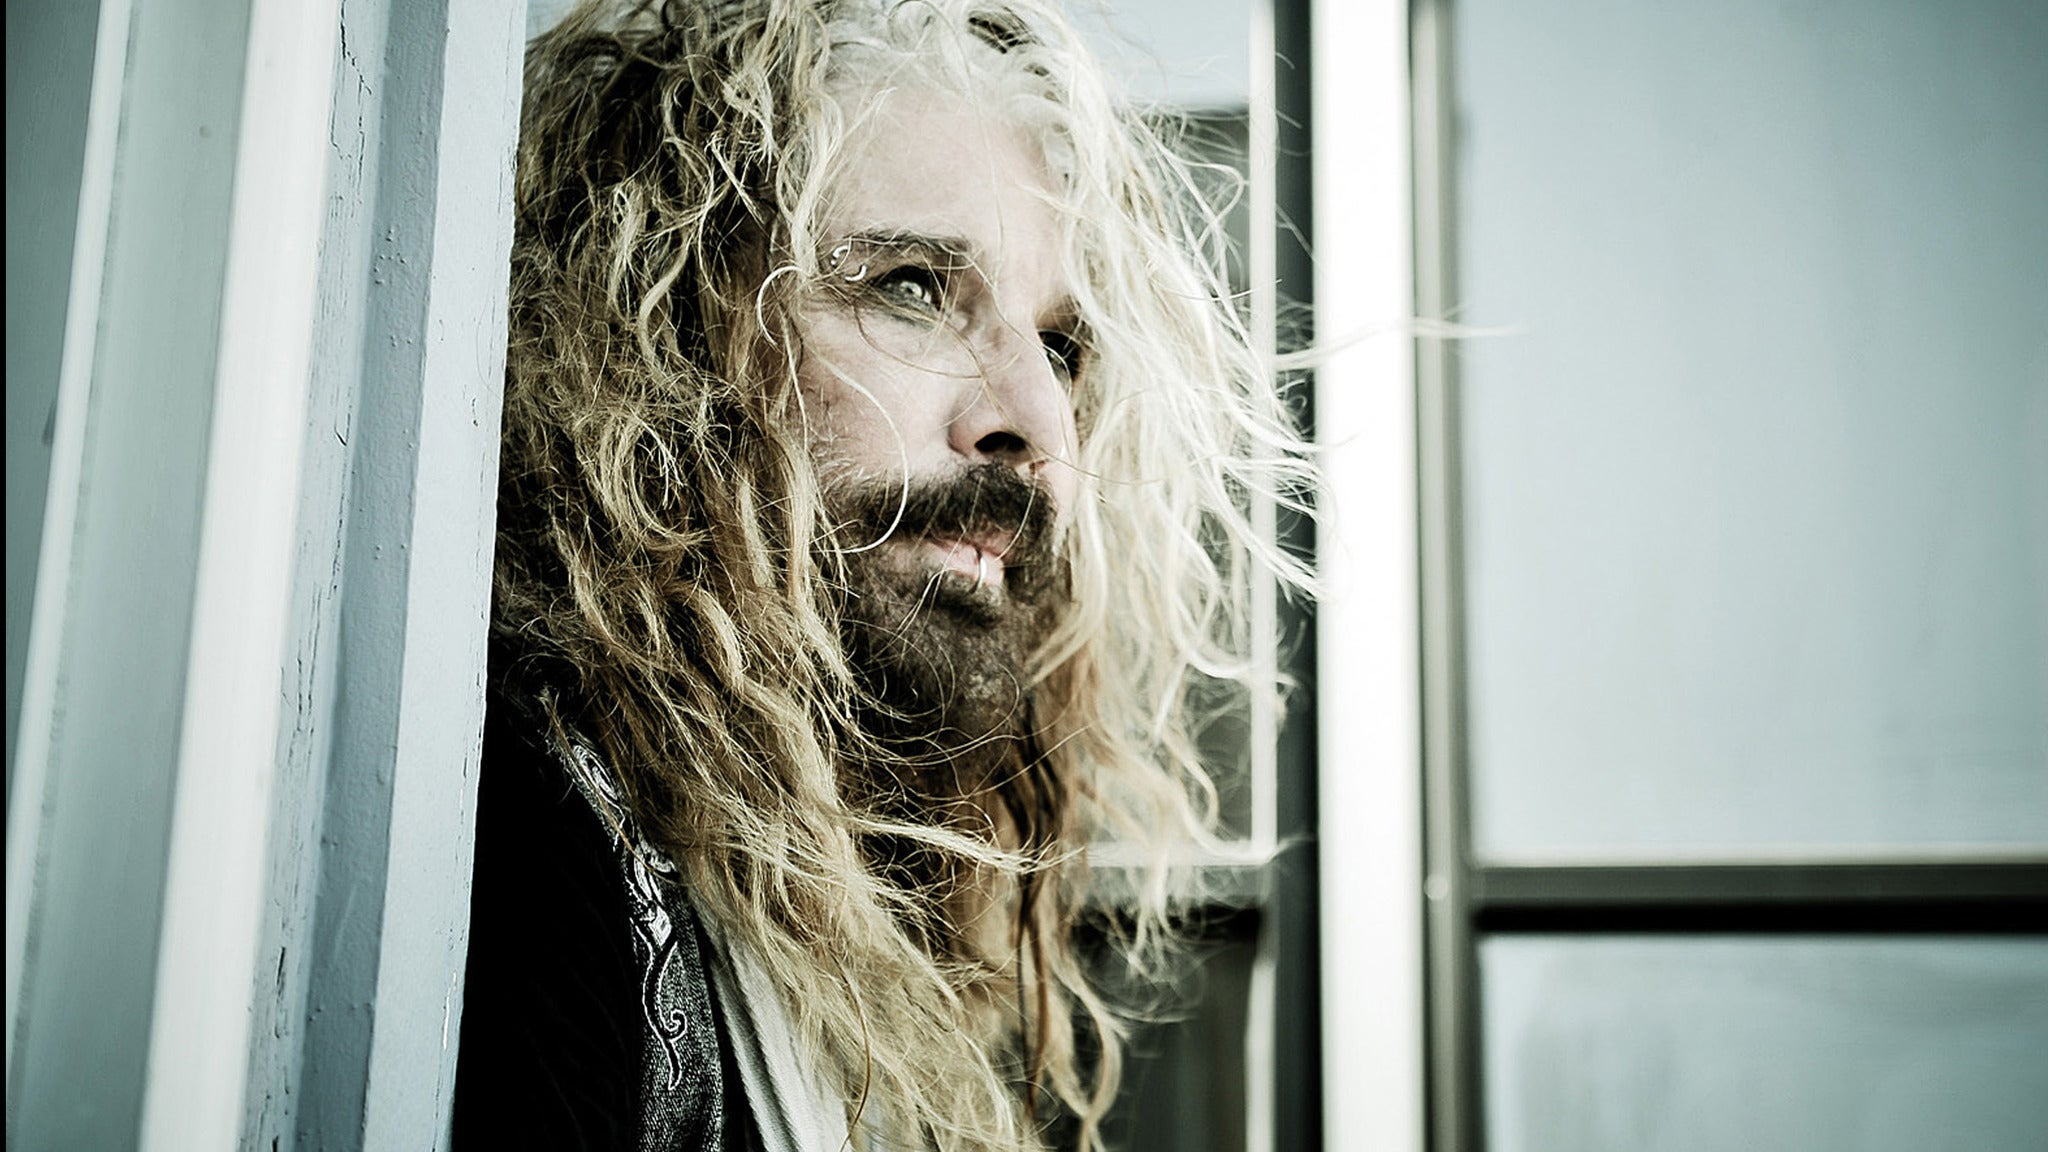 John Corabi with special guests at Brick by Brick - San Diego, CA 92110